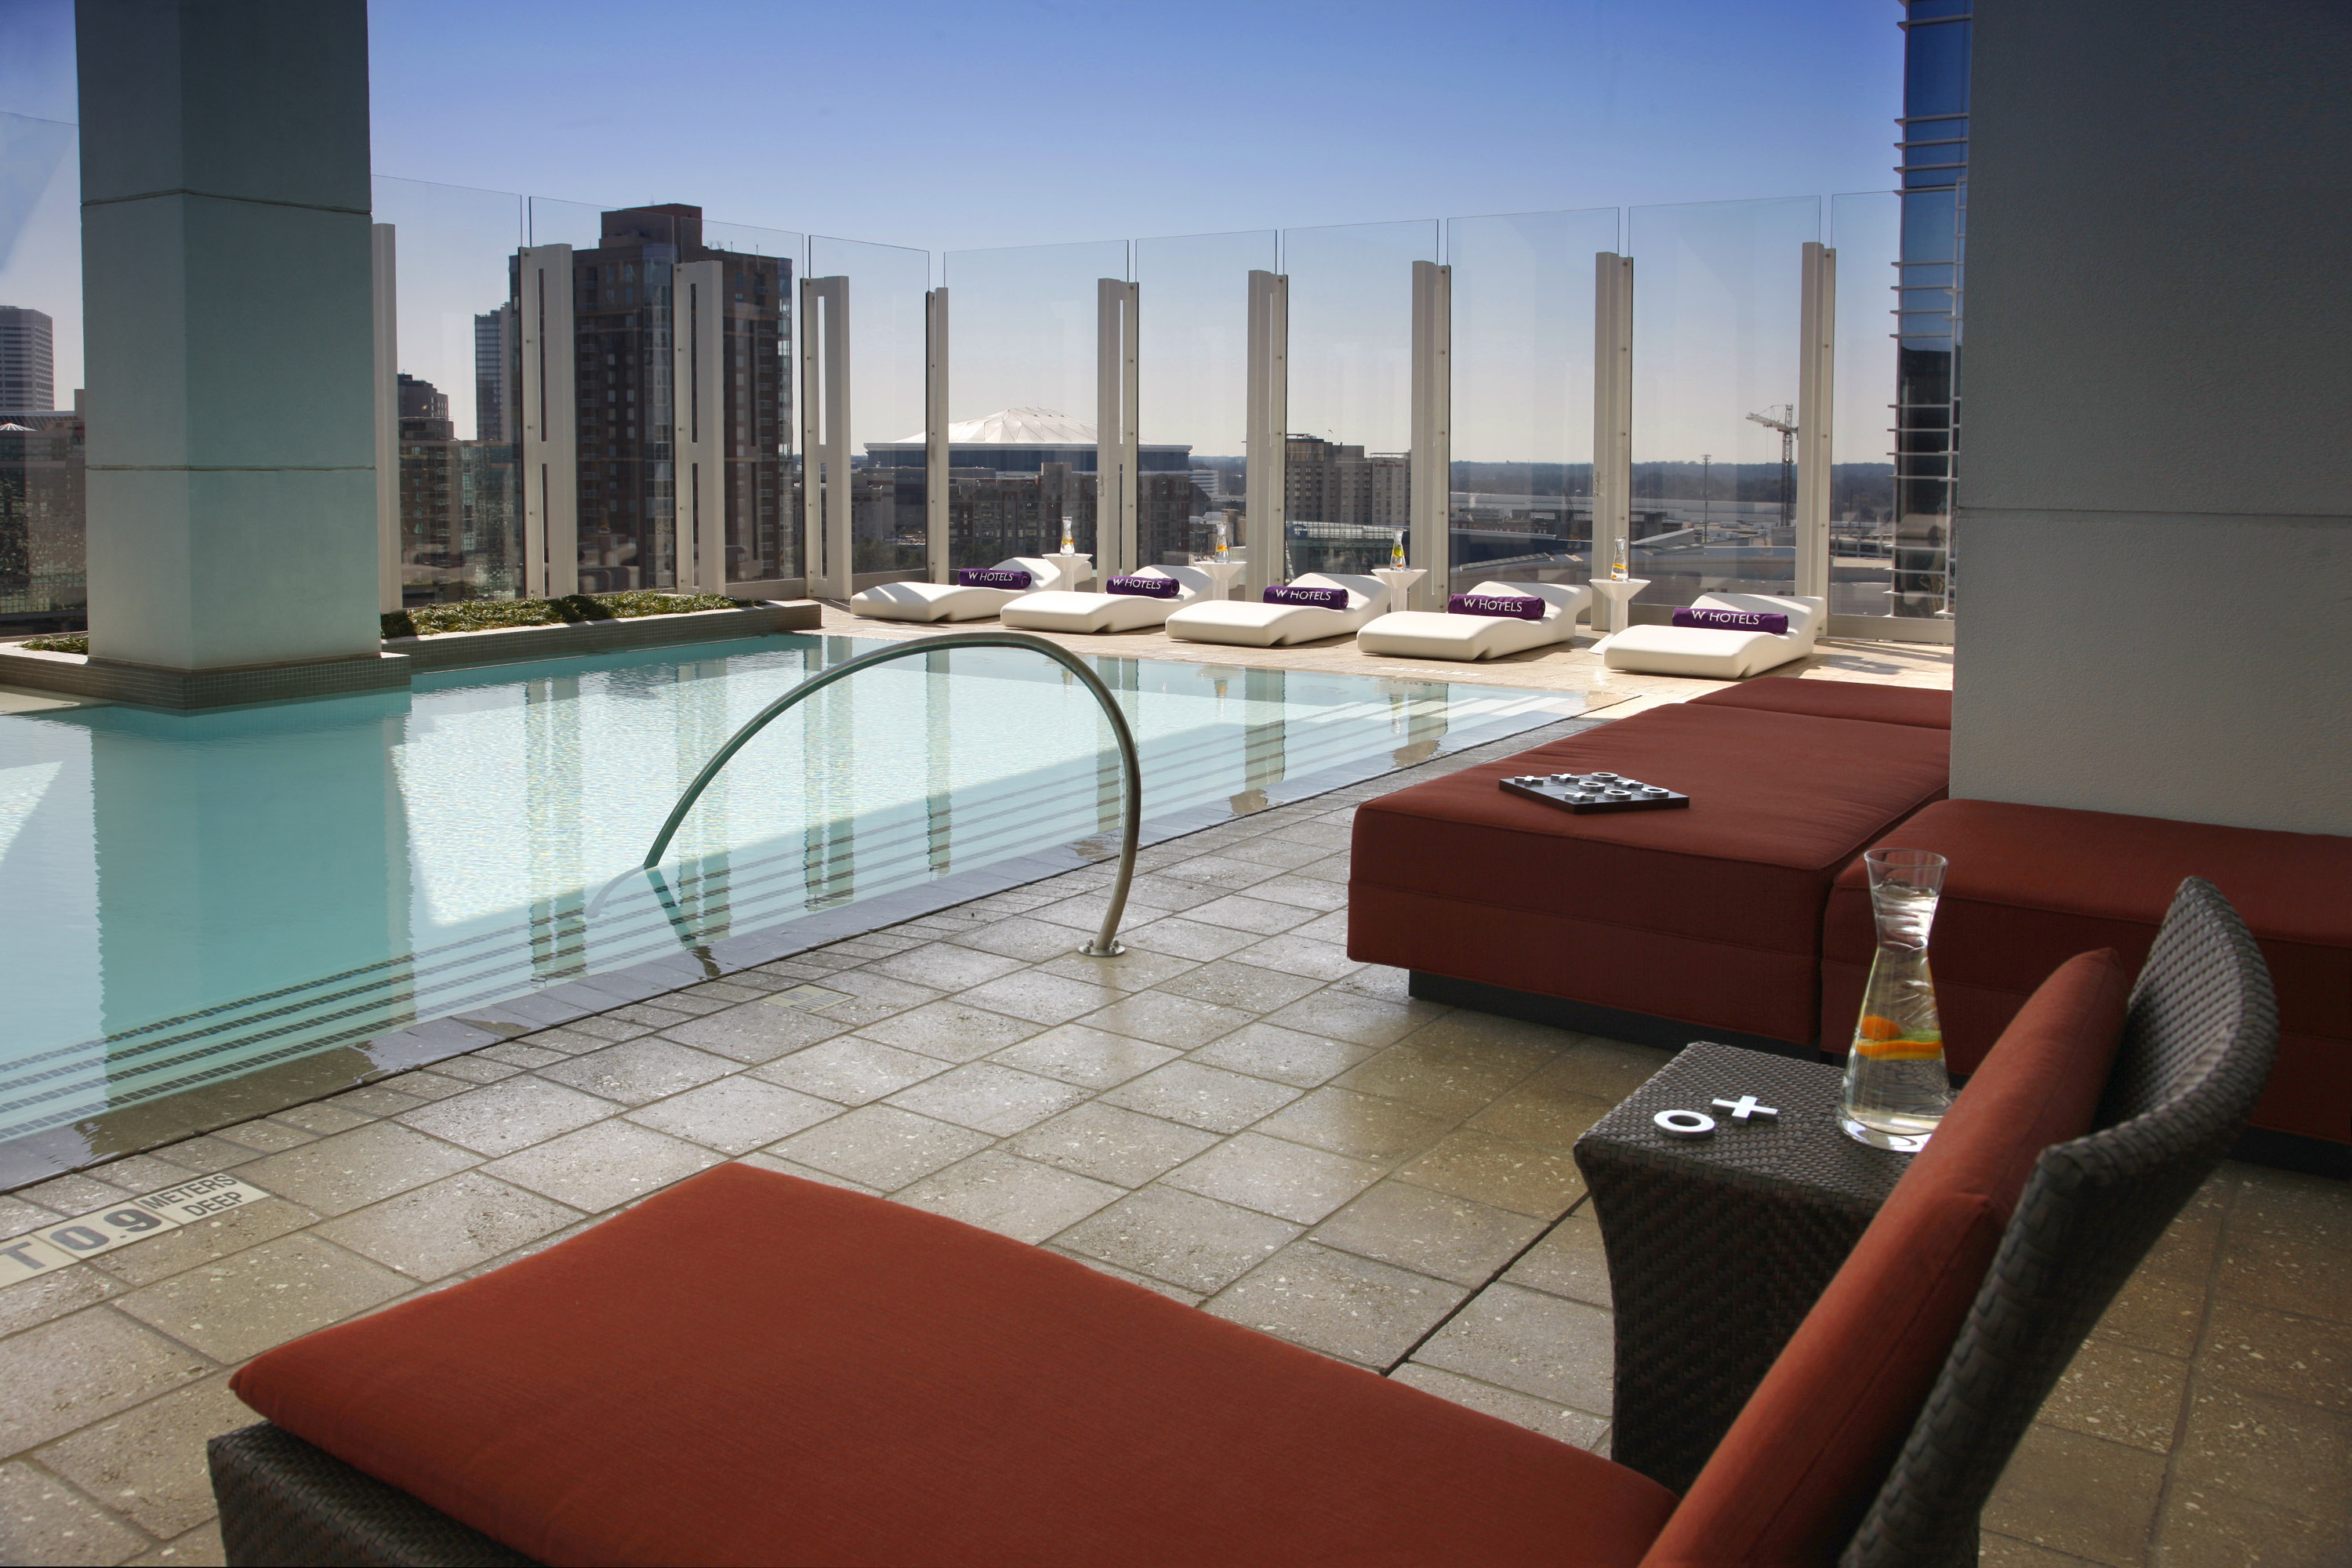 13 Rooftop Bars In Atlanta You Have To Visit